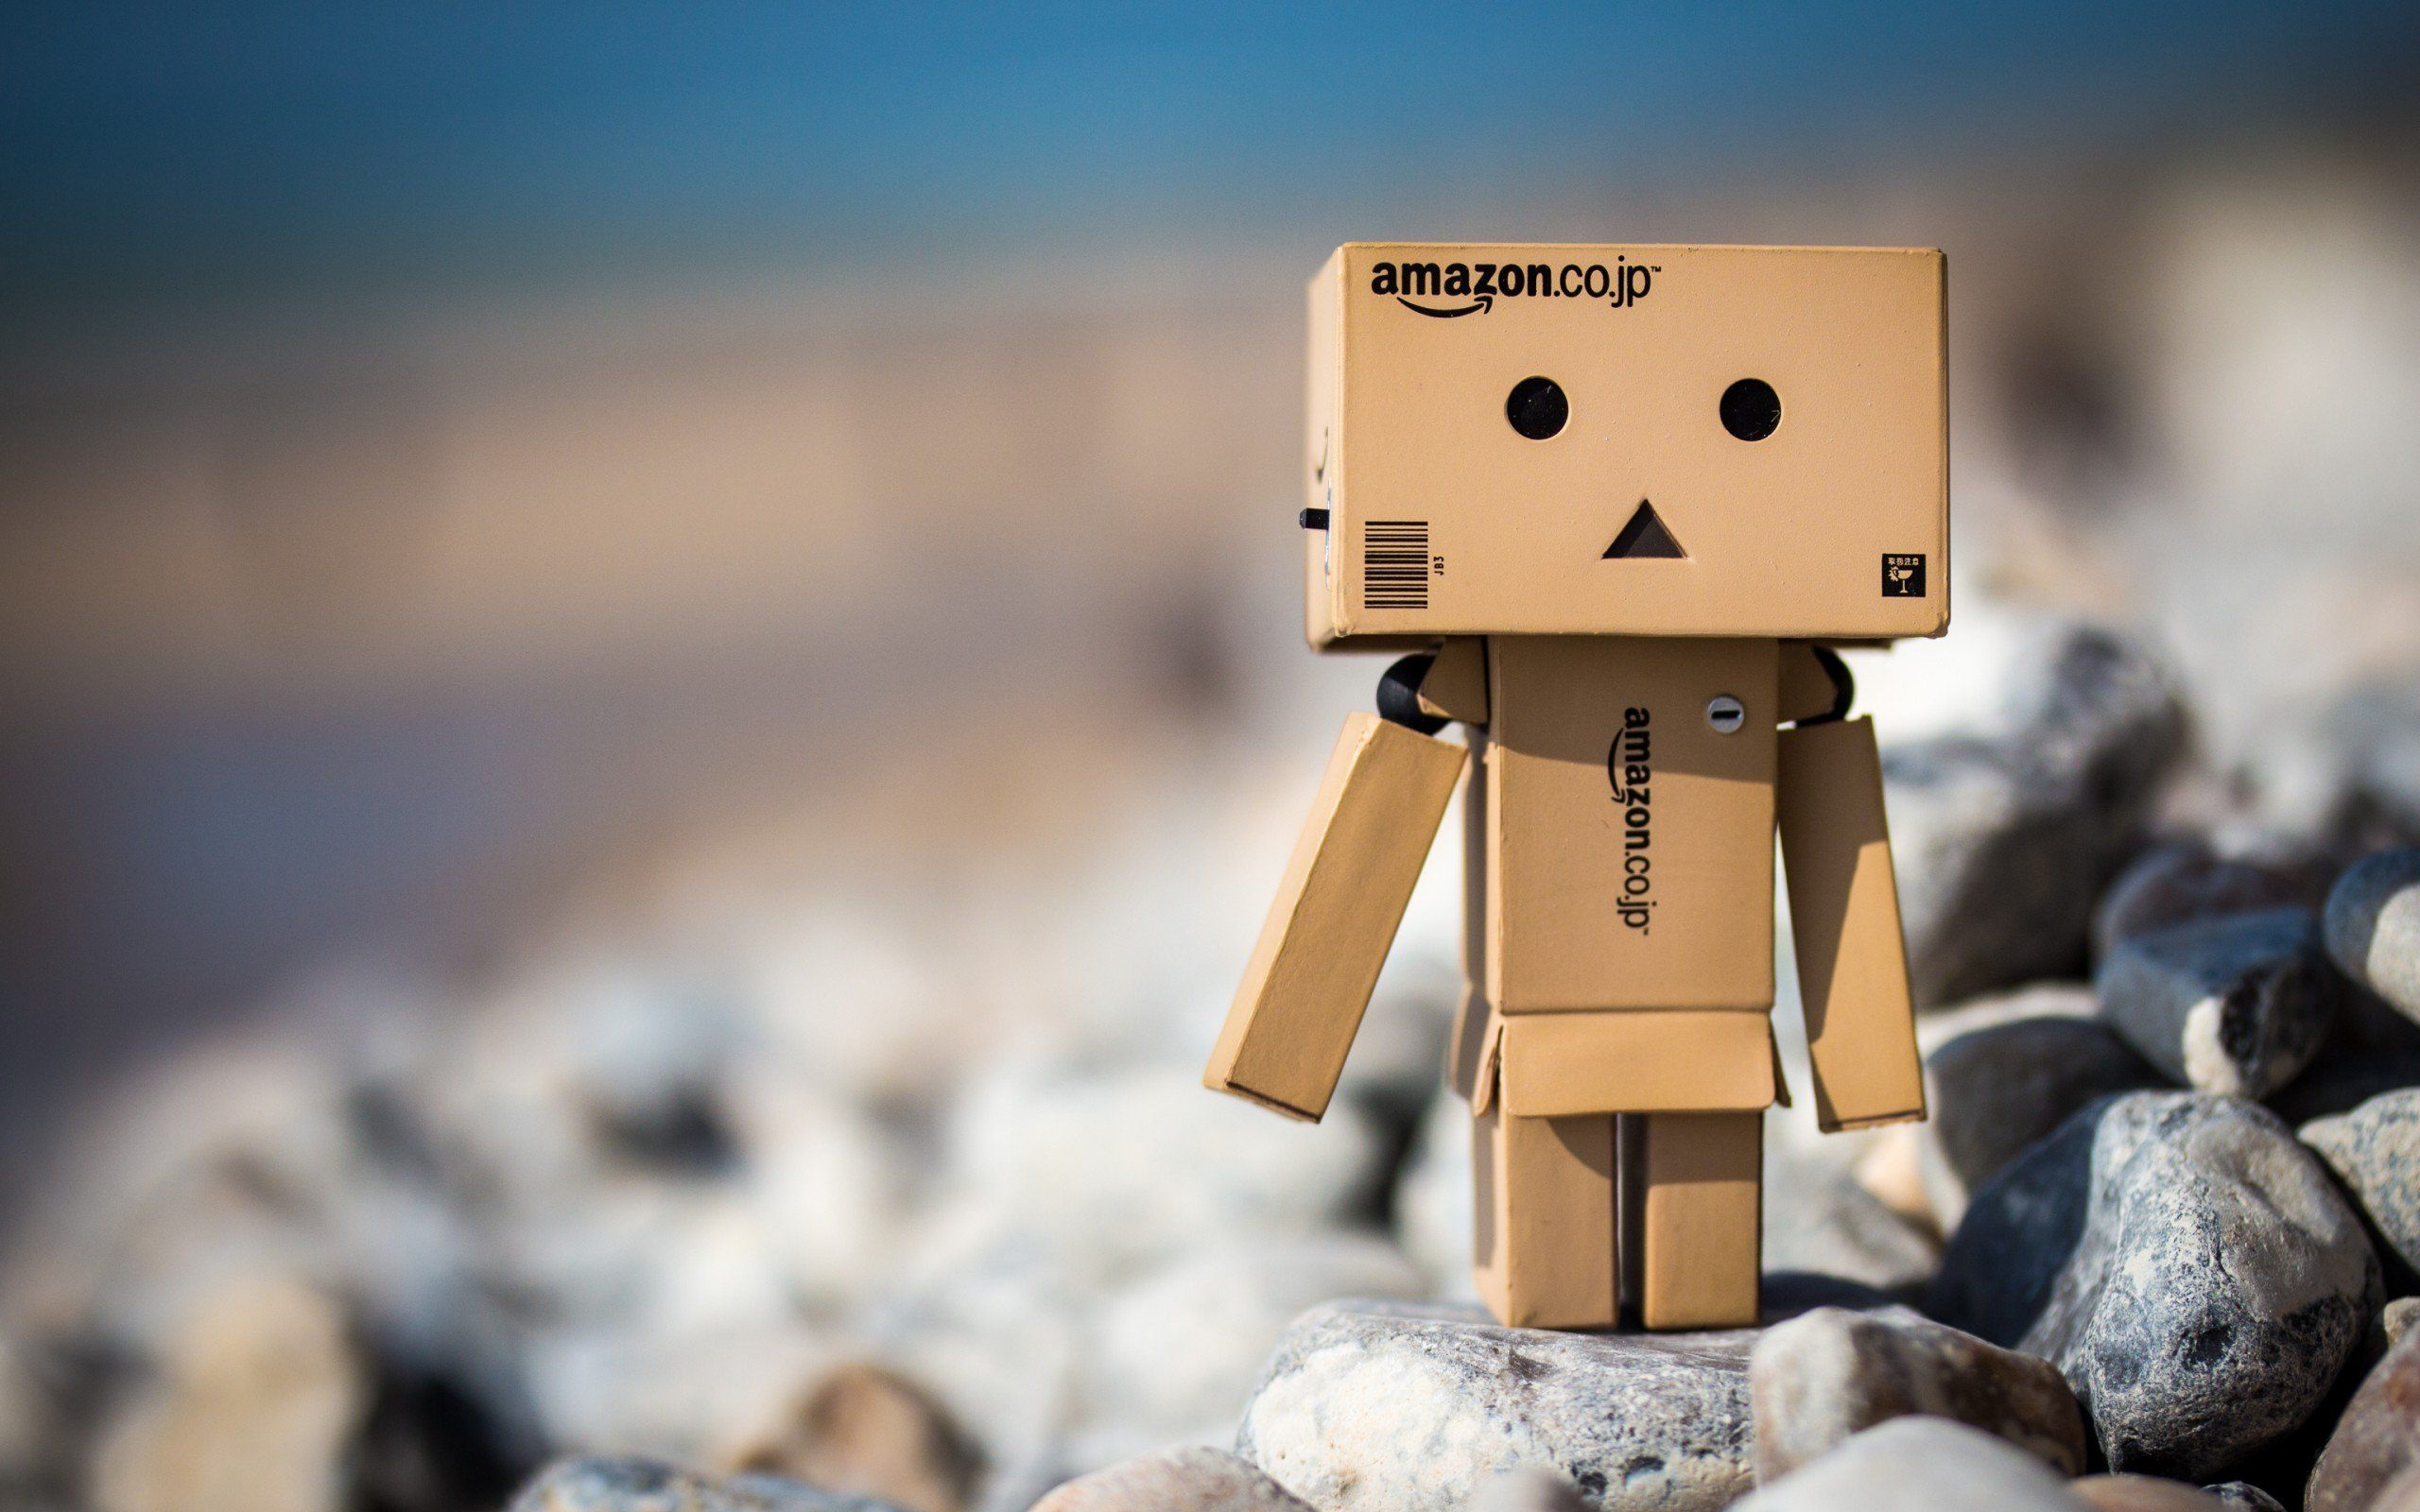 Cute Amazon Box Robot Box Man Robot Amazon Wallpaper Background Danbo Amazon Wallpaper Wallpaper